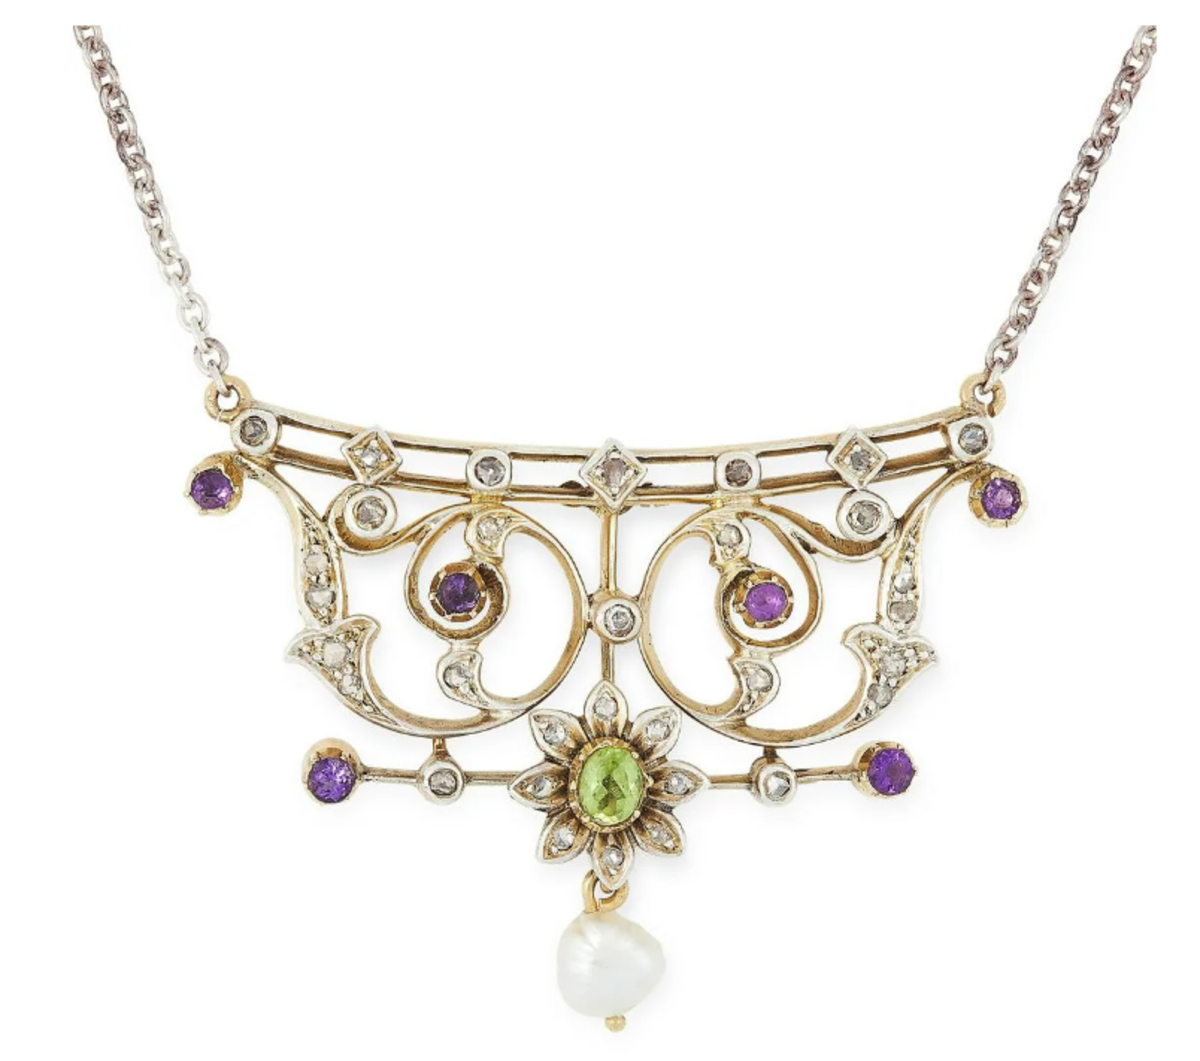 An antique suffragette pendant necklace in silver and gold, the scrolling design set with an oval-cut peridot, round-cut amethysts and rose-cut diamonds, suspending a pearl, $550.